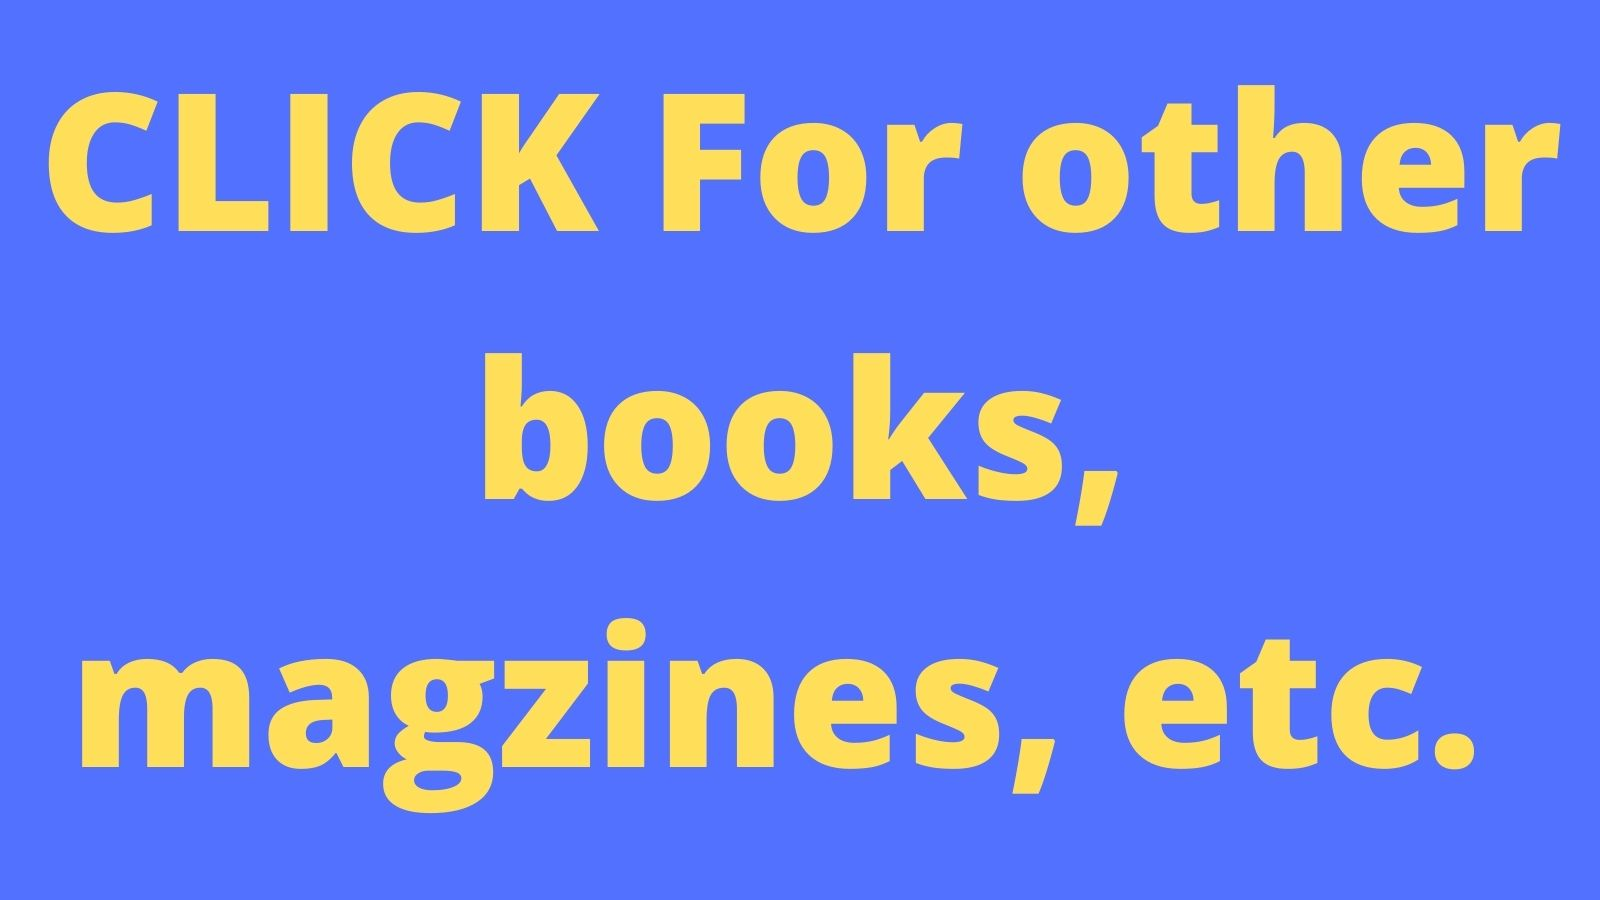 click-for-other-books-magzines-etc..jpg